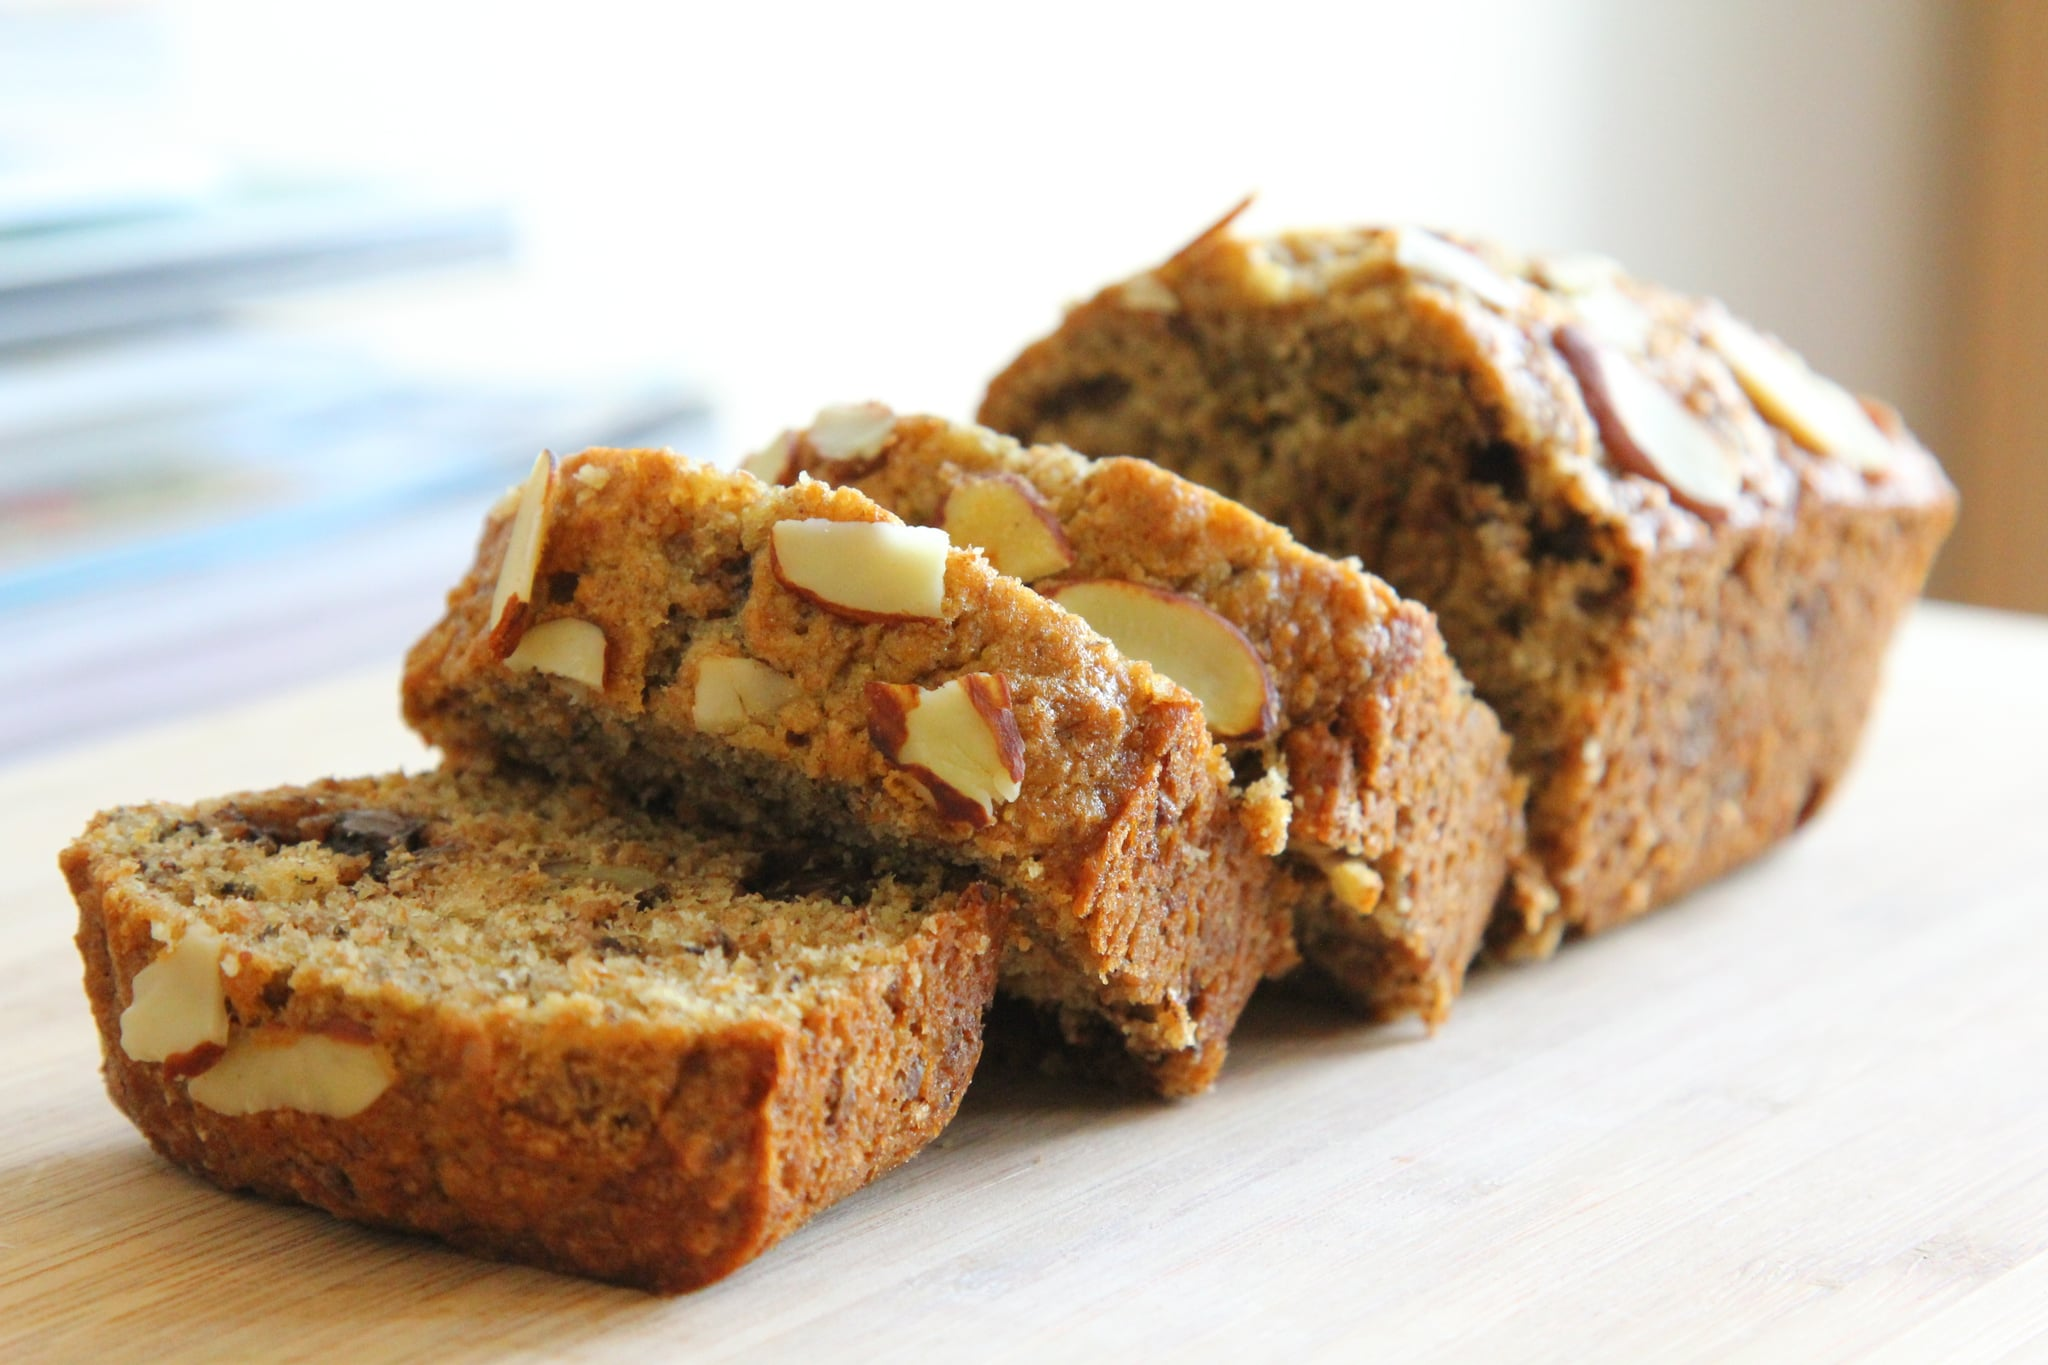 Change up banana bread recipes popsugar food its time to shake up your traditional banana bread recipe southern living forumfinder Image collections